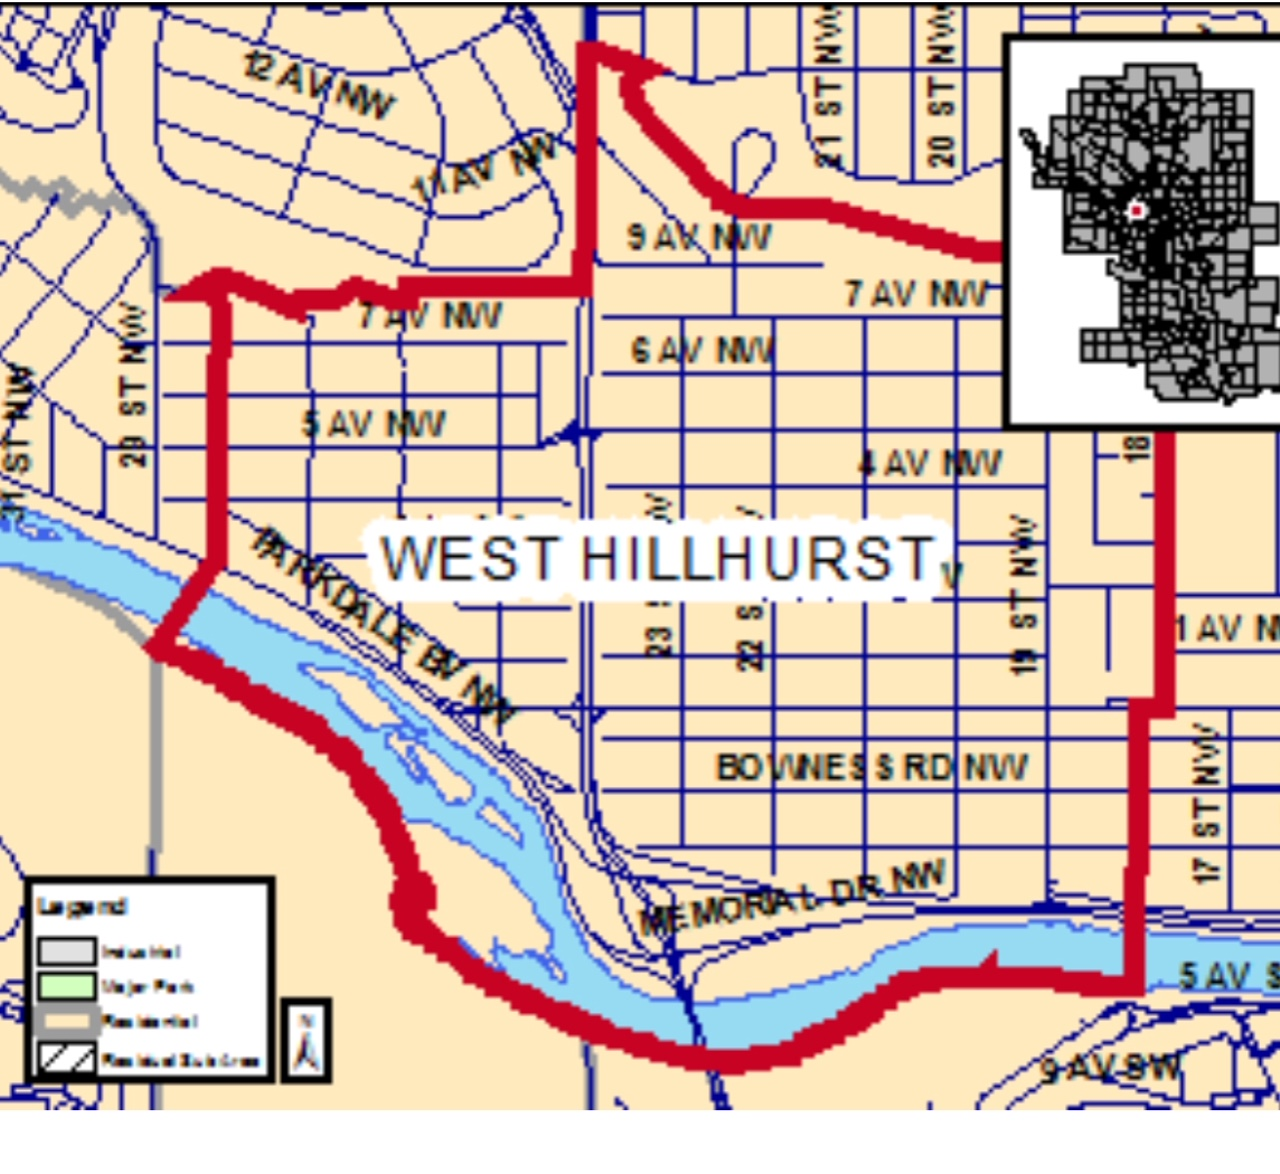 West Hillhurst has strange boundaries. It would seem more logical for the boundary to extend to 29th St on the west and 14th Street on the east? Note the south boundary includes the southern shore of the Bow River, which means we have some great beaches and pathways.